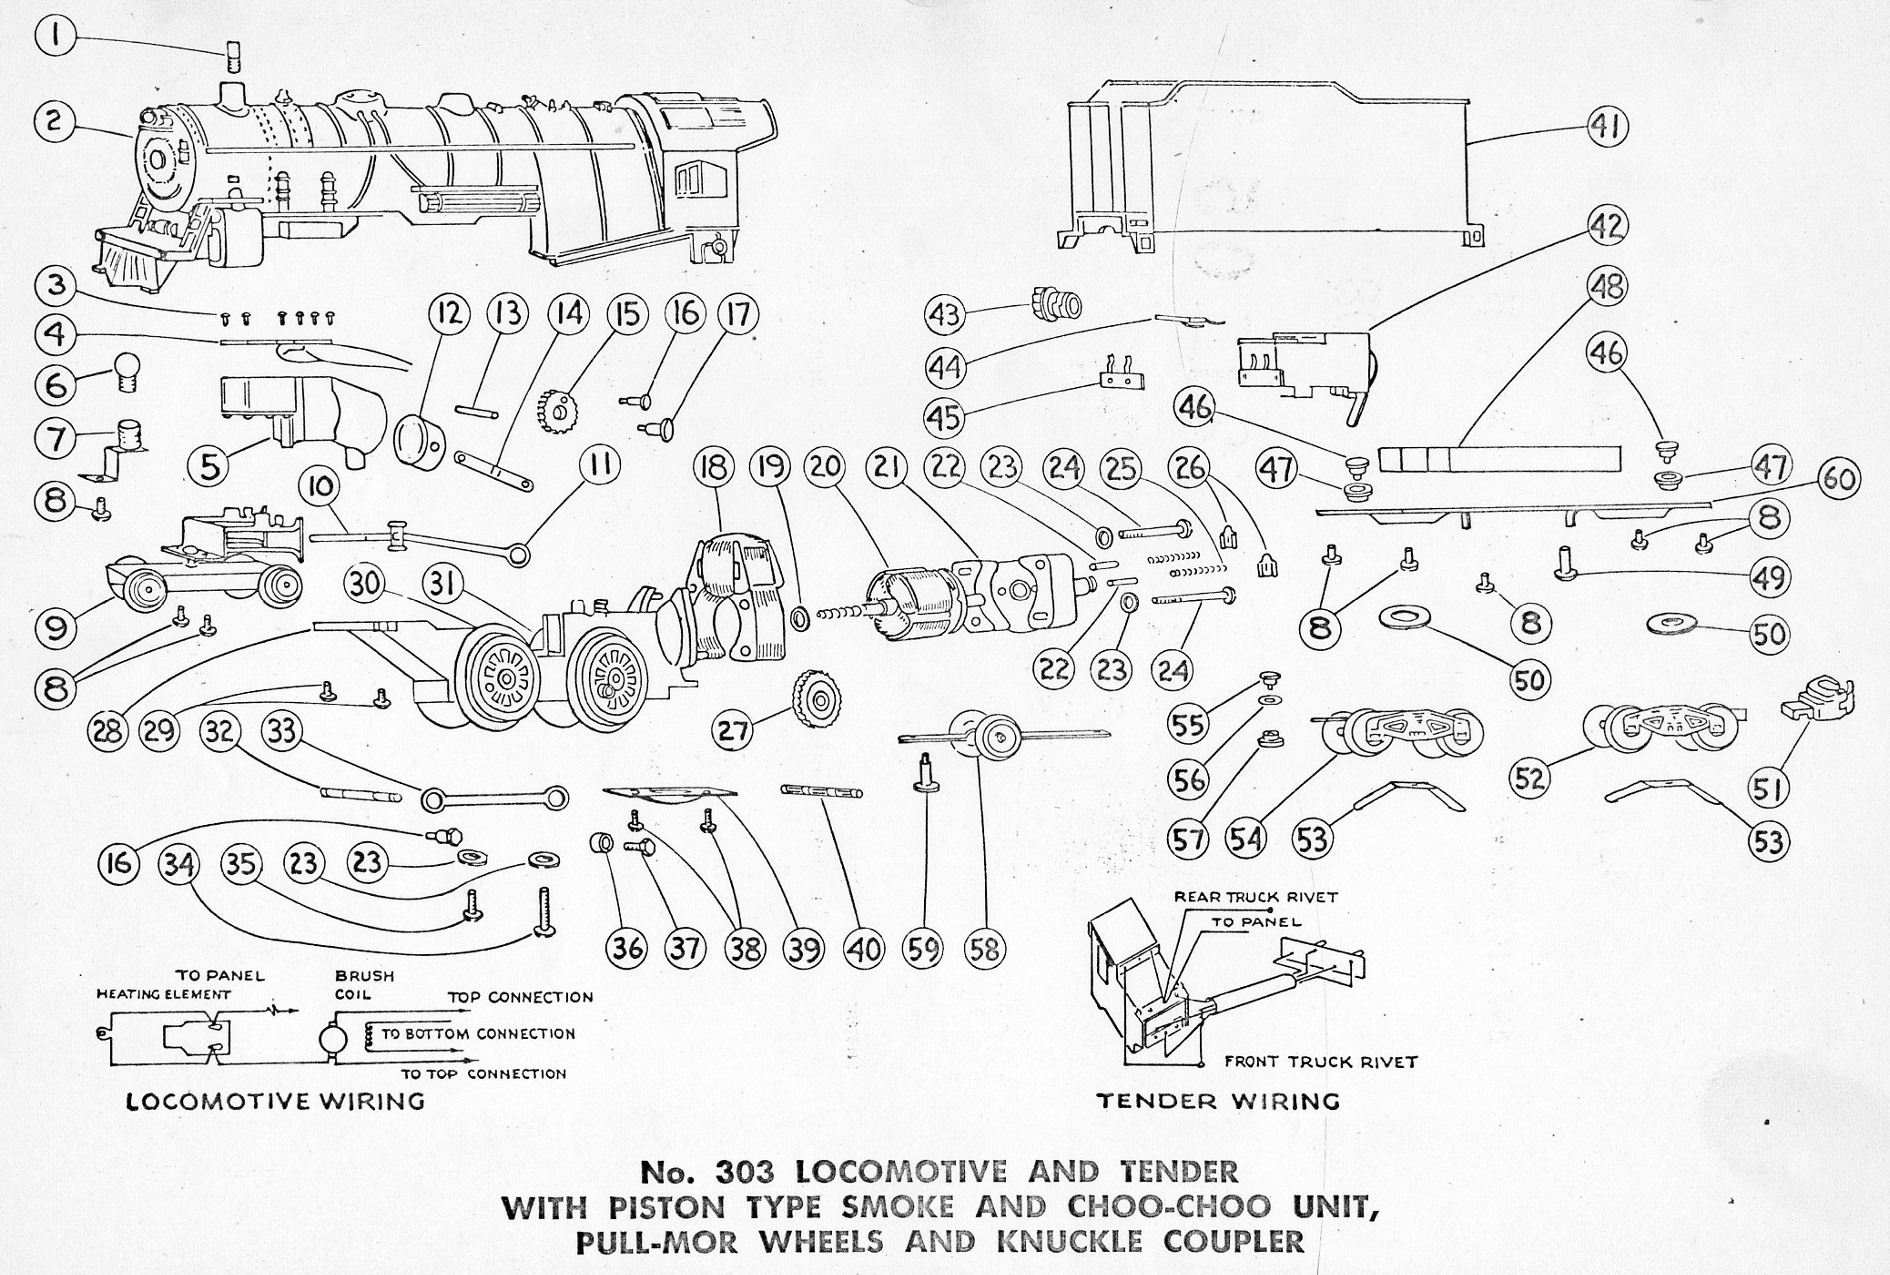 American Flyer Locomotive 303 Parts List and Diagram TrainDR